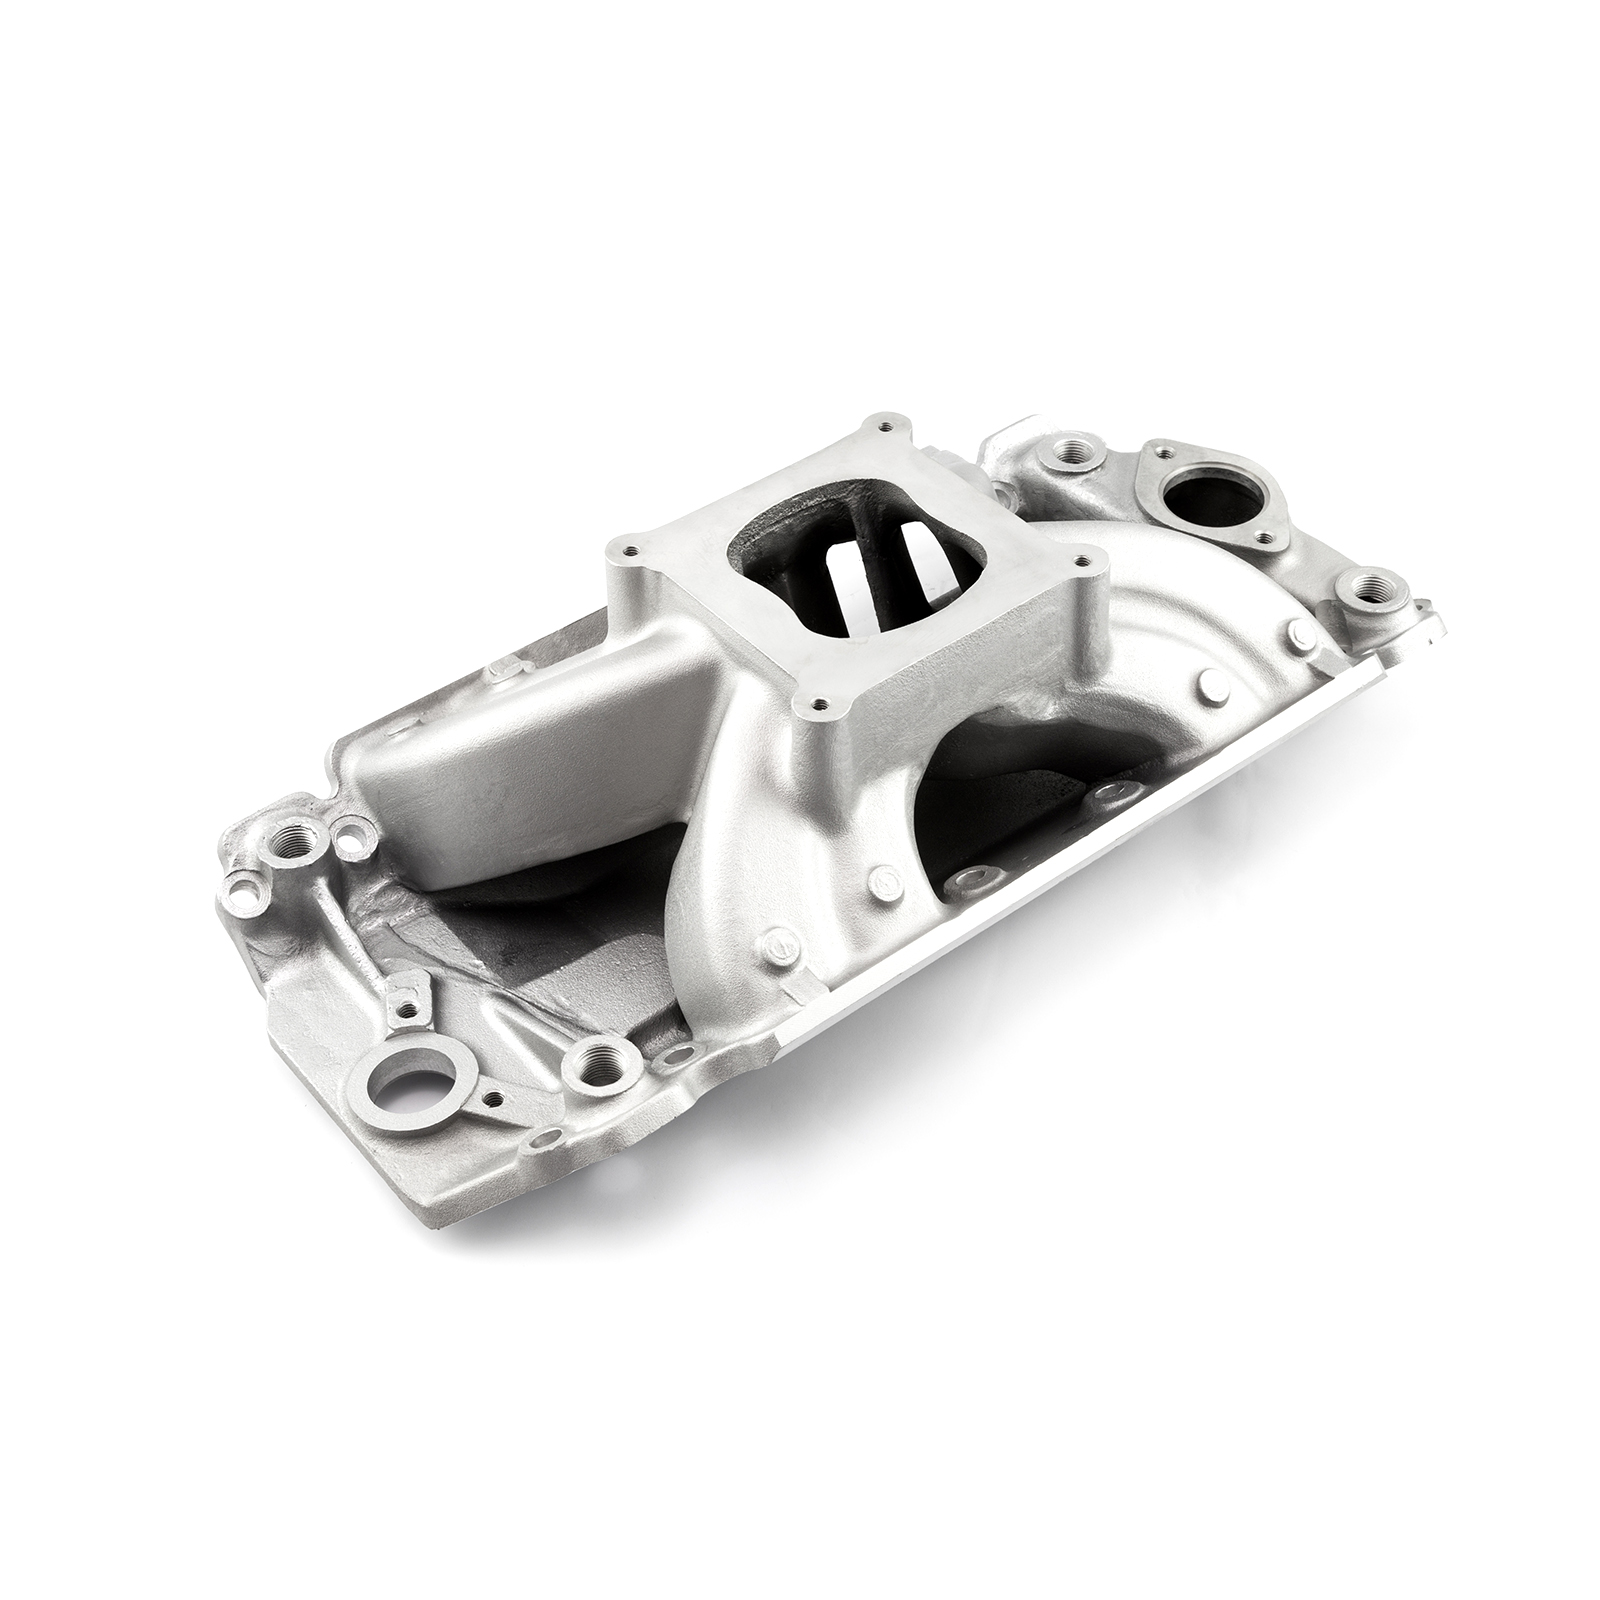 Chevy BBC 454 Shootout Rect Port High Rise Intake Manifold Satin